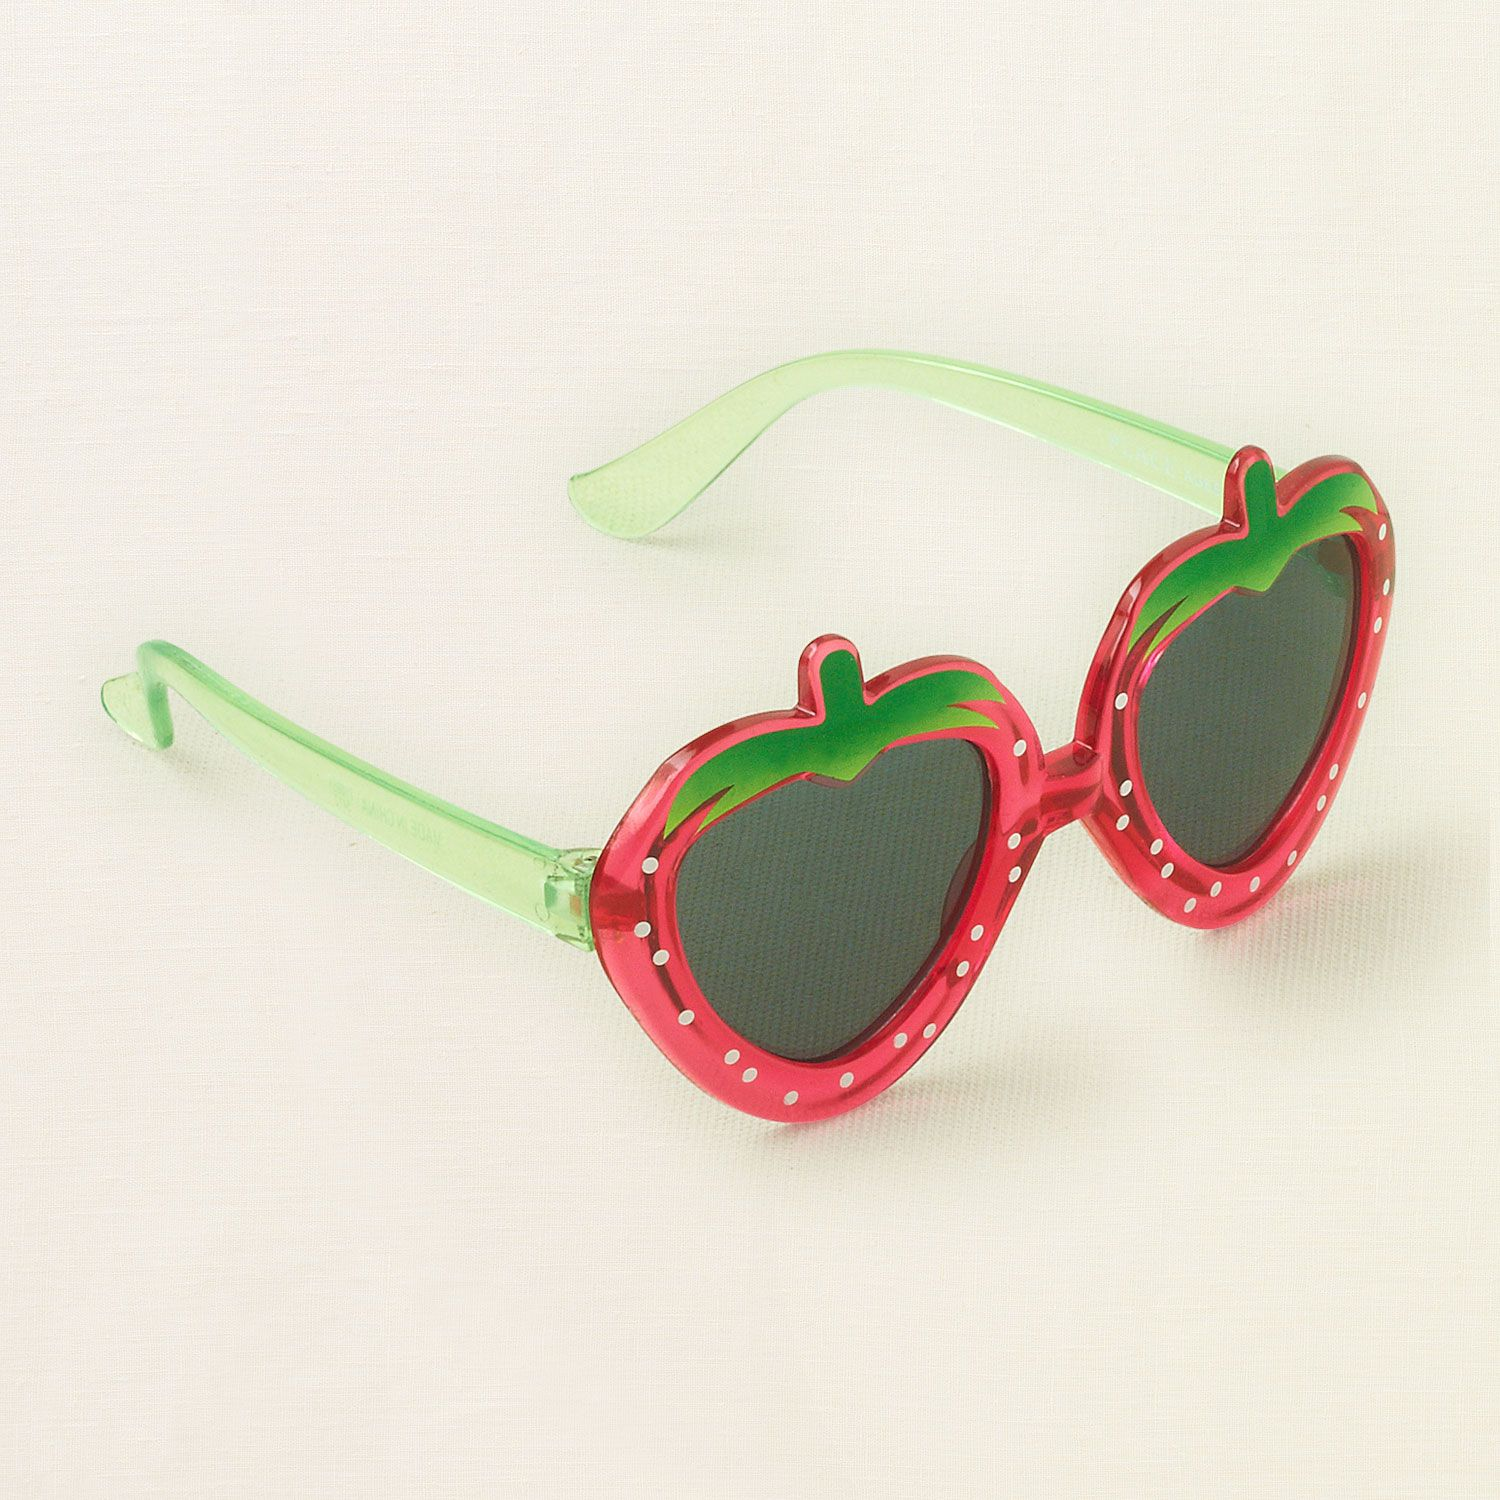 strawberry sunglasses from childrens place - if these were big enough for me, I would have stolen them off my 3-year-old cousin's face!